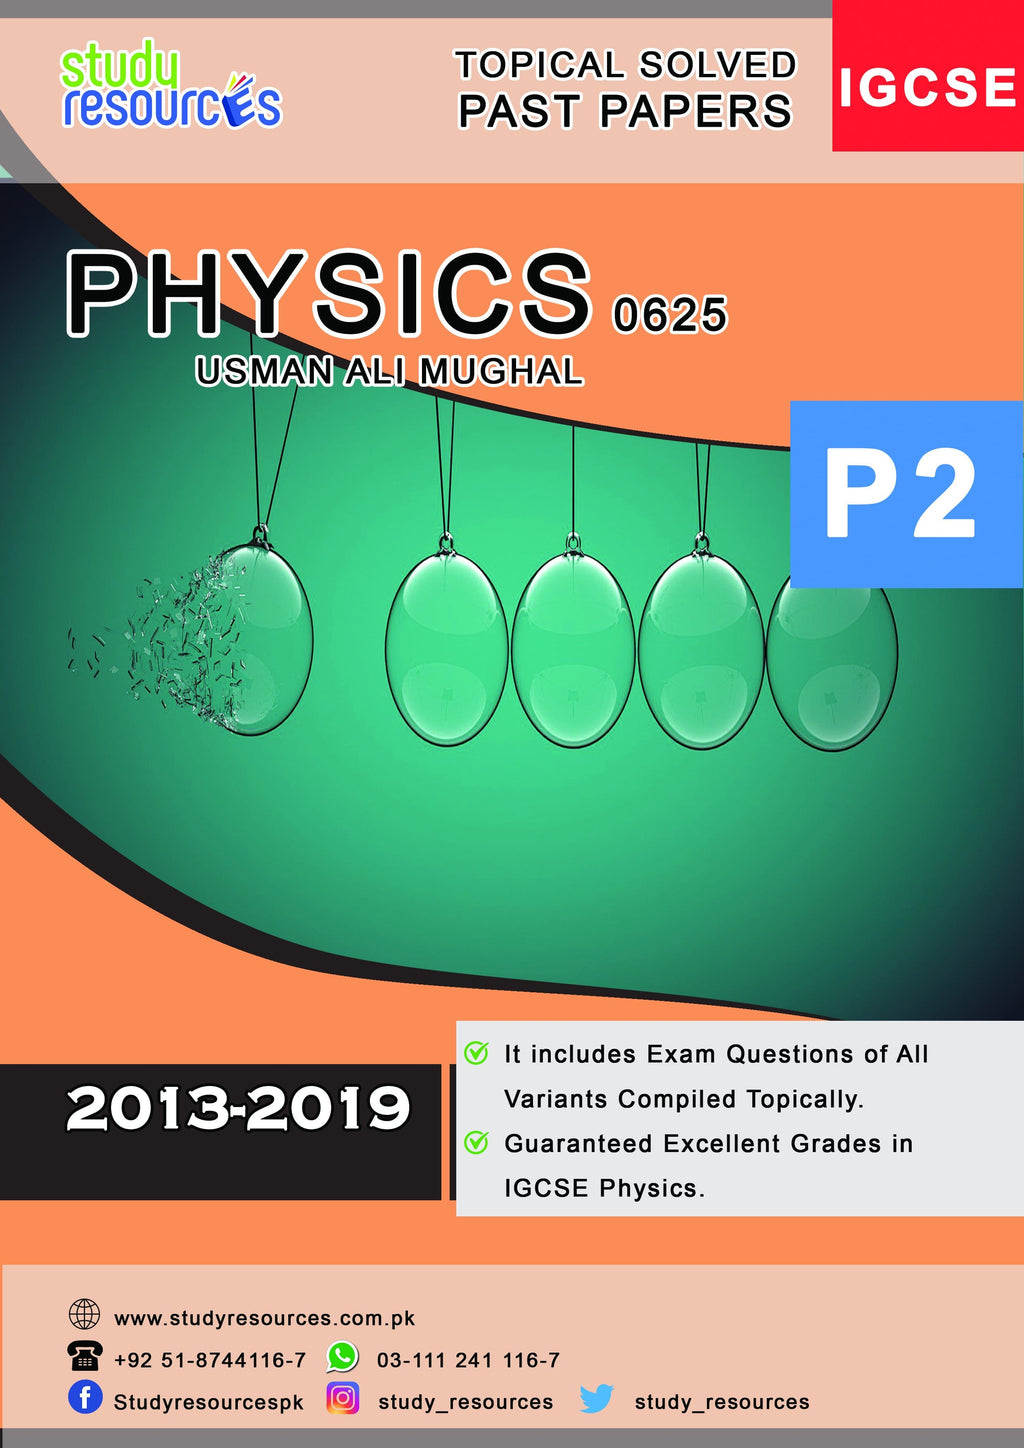 Cambridge IGCSE Physics (0625) Topical MCQs Paper-2 (2013-2019) by Sir. Usman Ali Mughal